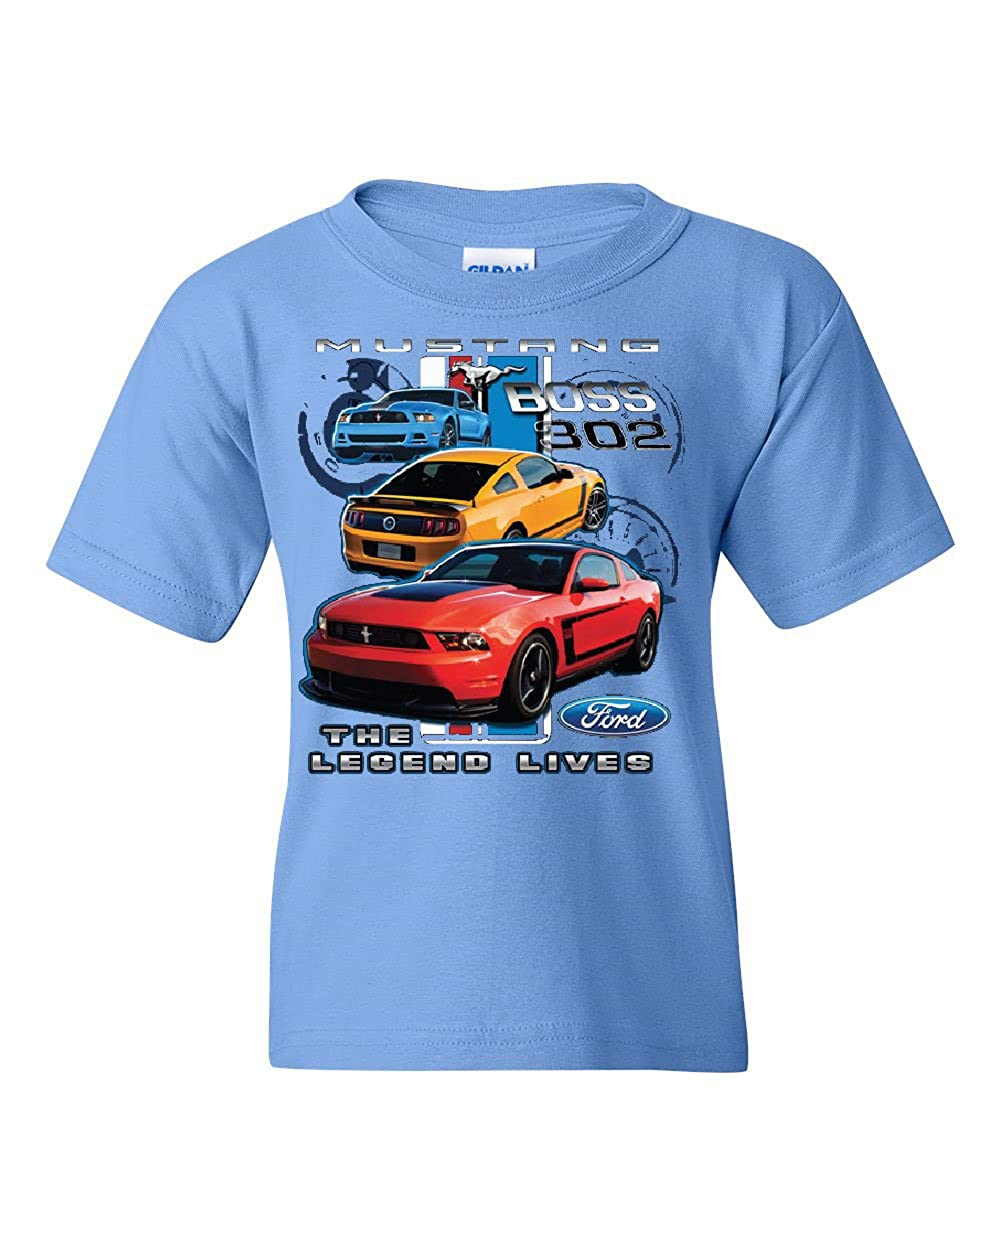 Ford Mustang The Legend Lives Youth T-Shirt Licensed Ford Design Tee 100034-YT2